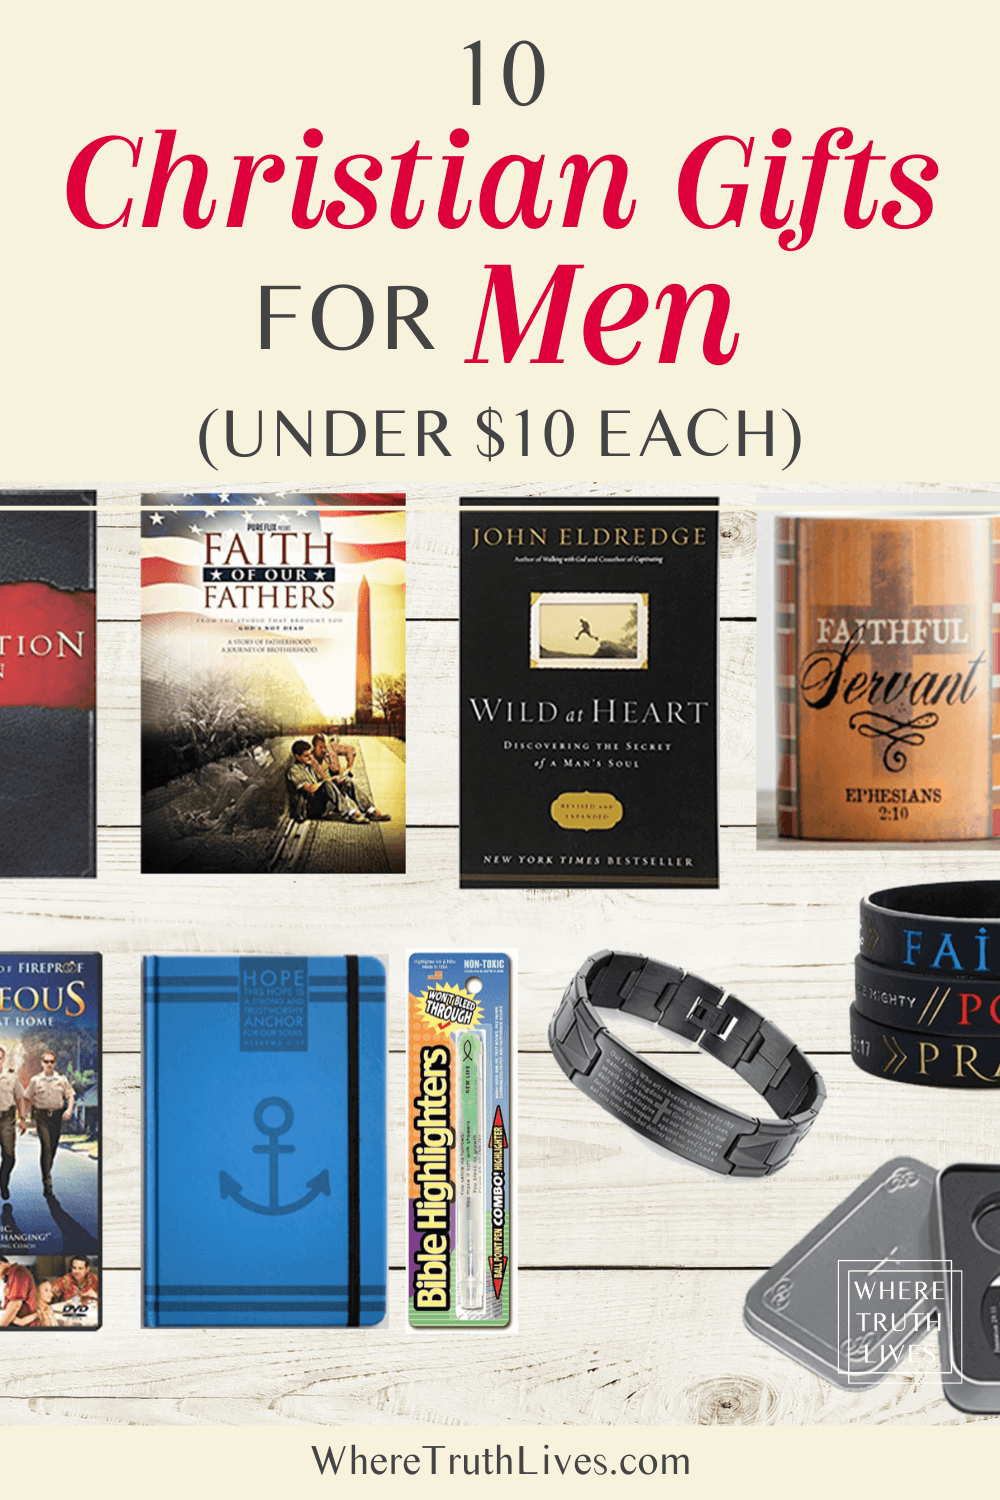 10 Christian Gifts for Men (Under $10 Each)